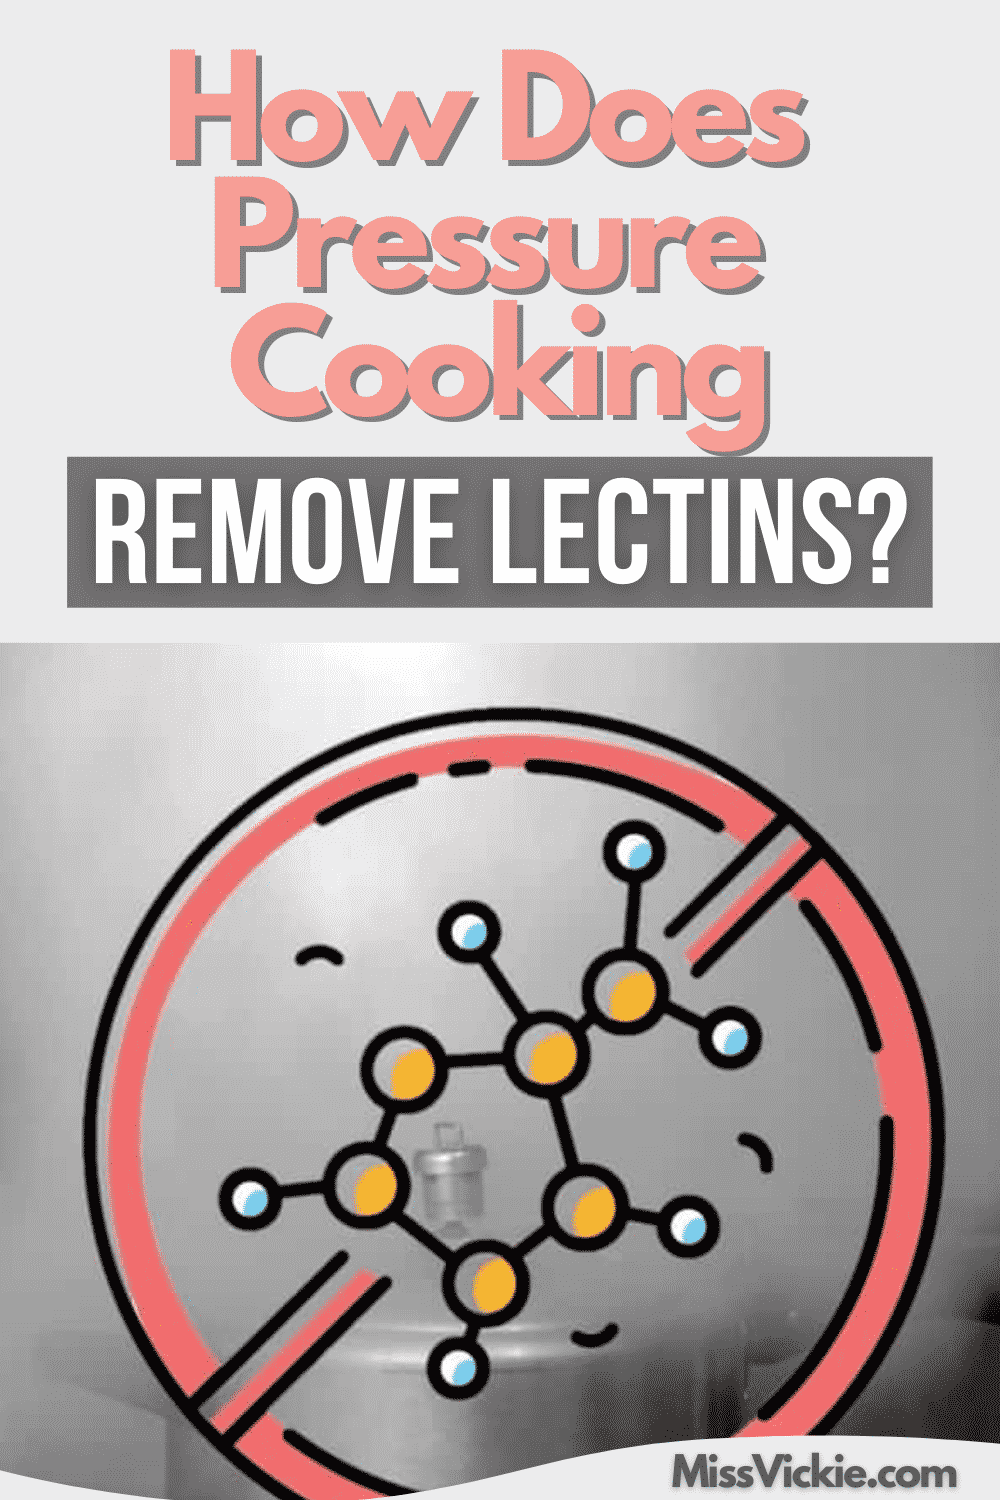 How Does Pressure Cooking Remove Lectins